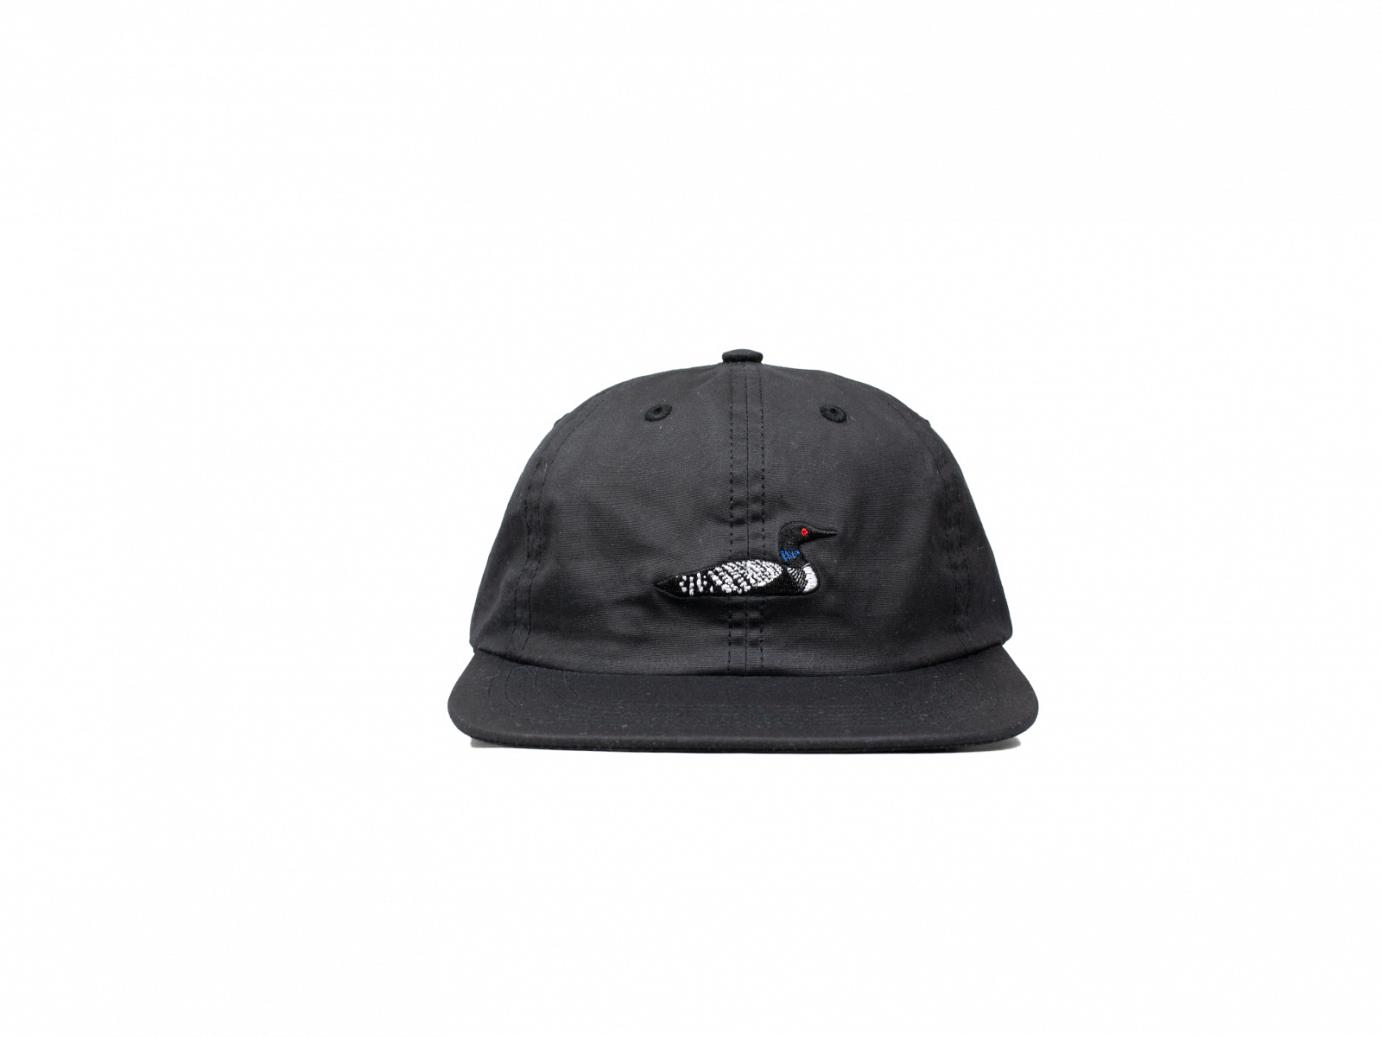 loon polo hat